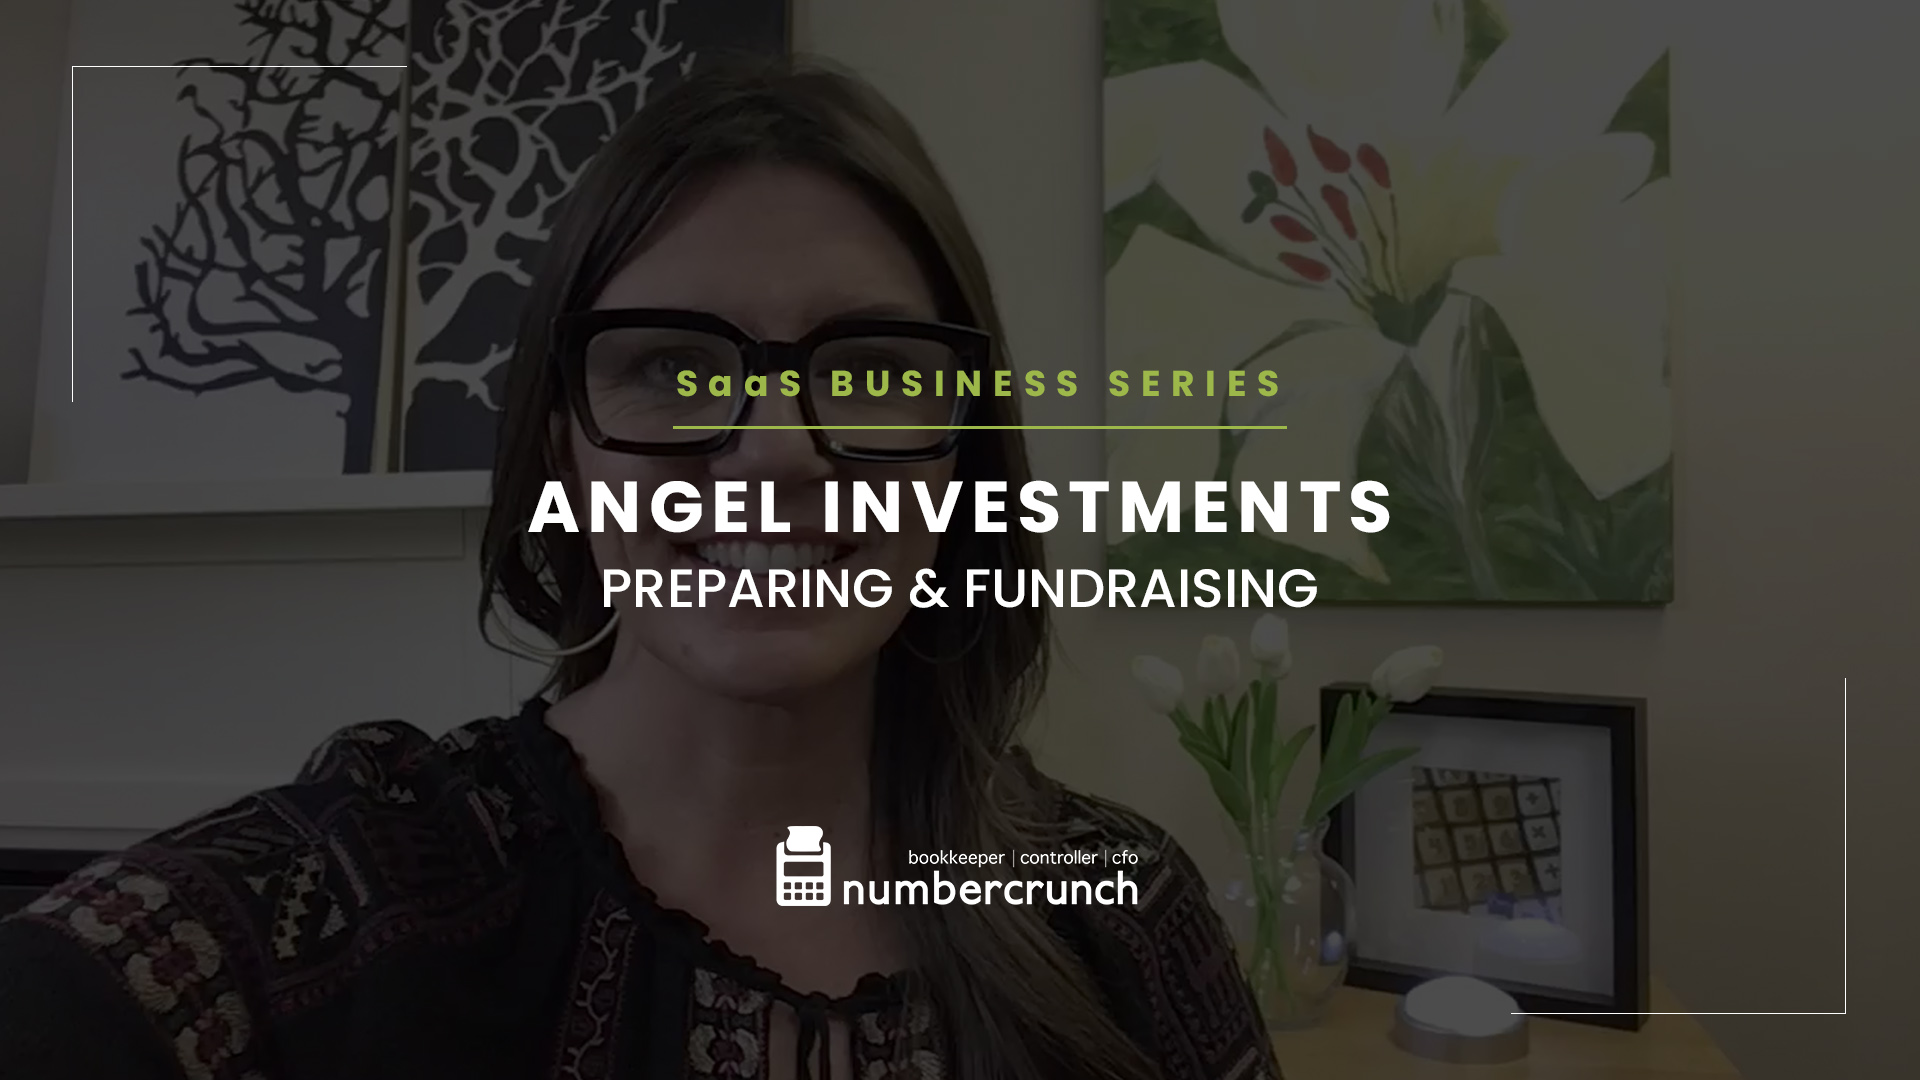 Angel Investments for SaaS Businesses: Preparing & Fundraising